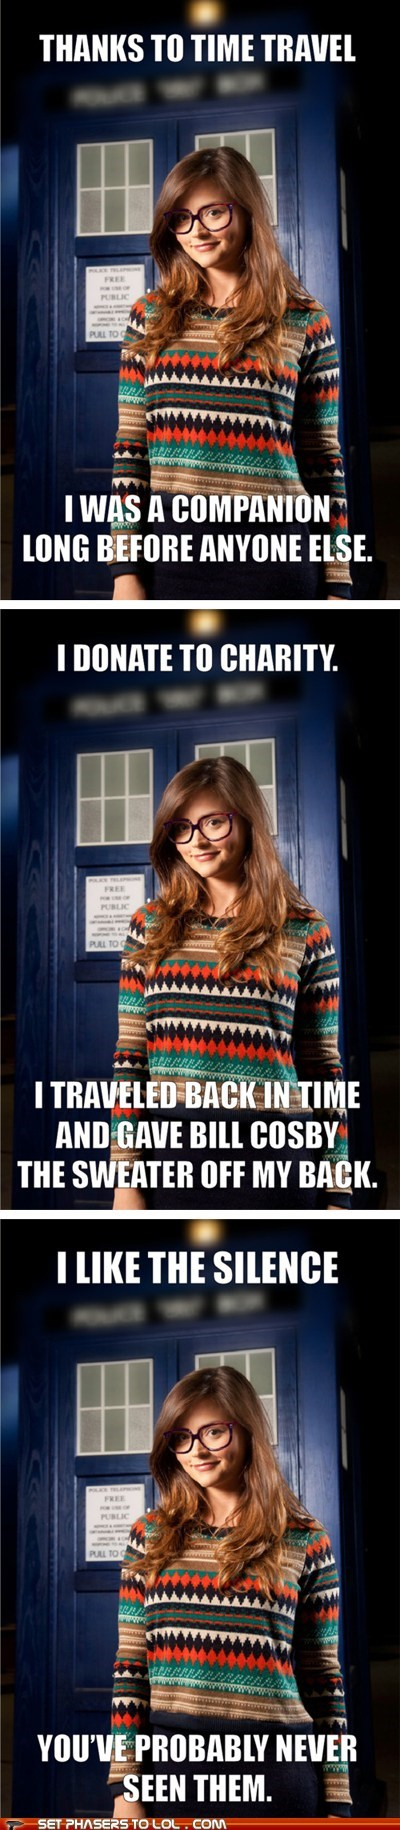 Doctor Who - Hipster Companion